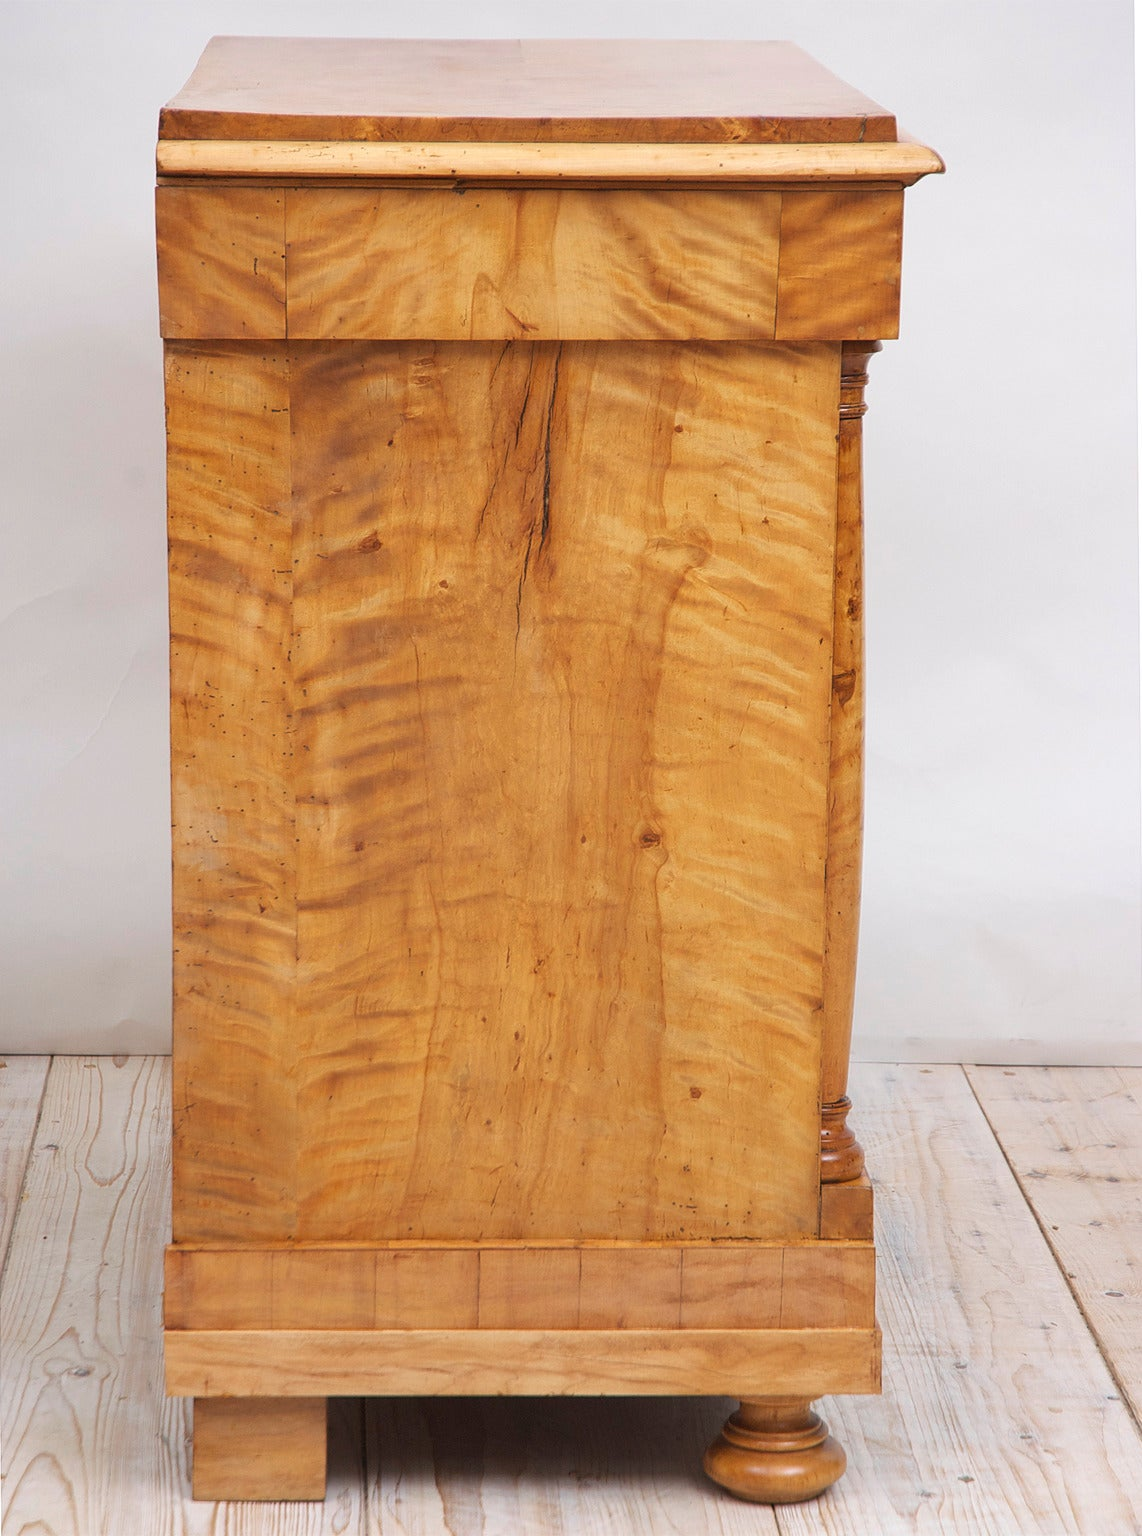 Polished Swedish Biedermeier / Empire Chest of Drawers in Quilted Birch, circa 1820 For Sale